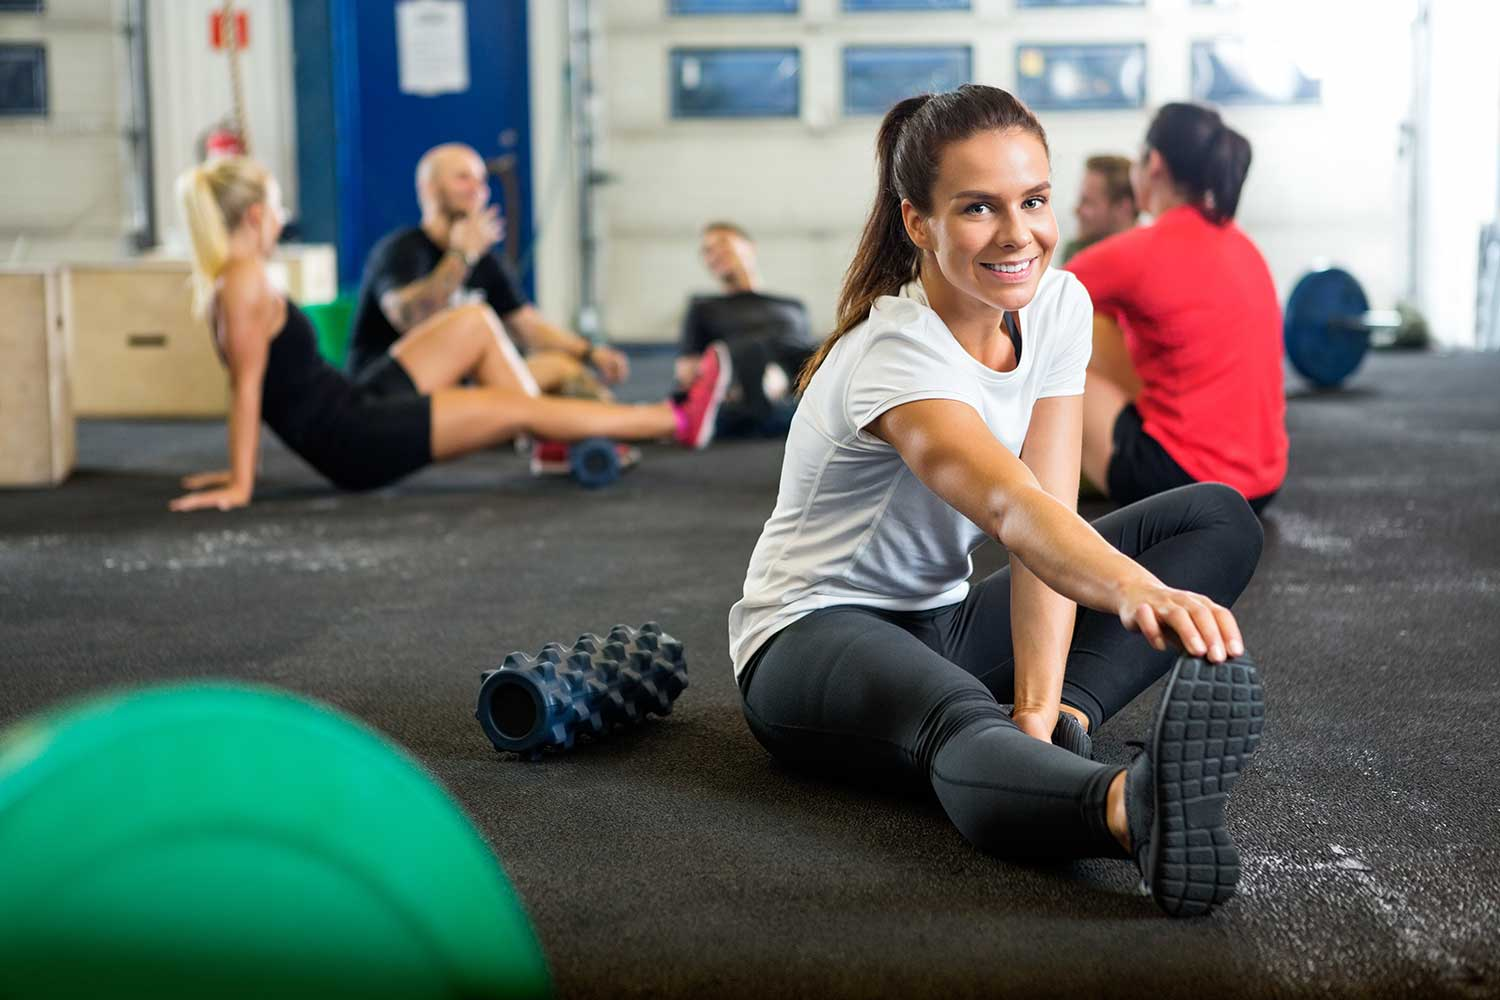 Lady stretching after an intense interval training workout